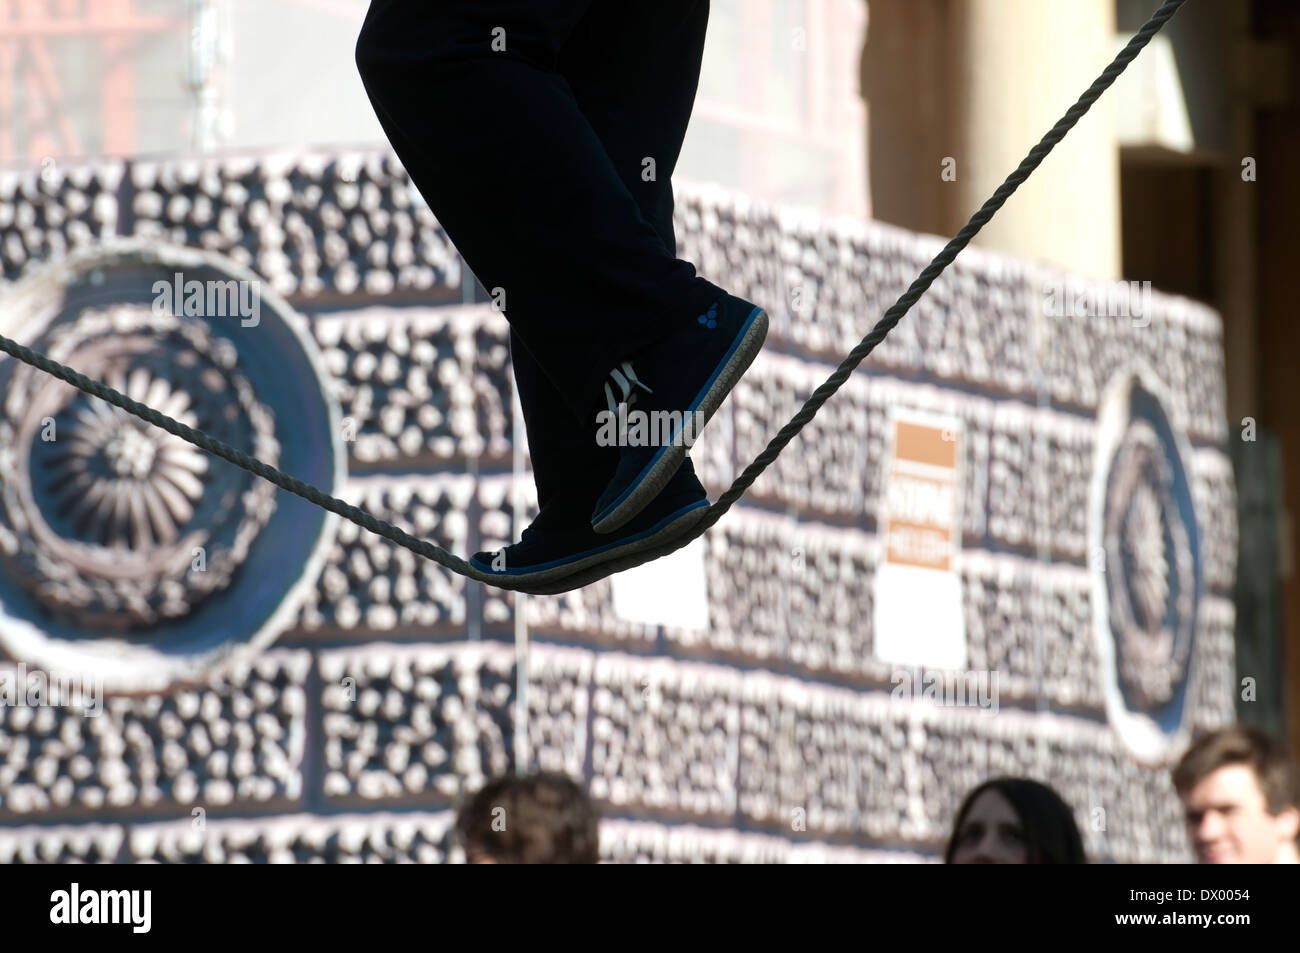 Busker on a tightrope, Bath, Somerset, England, UK - Stock Image